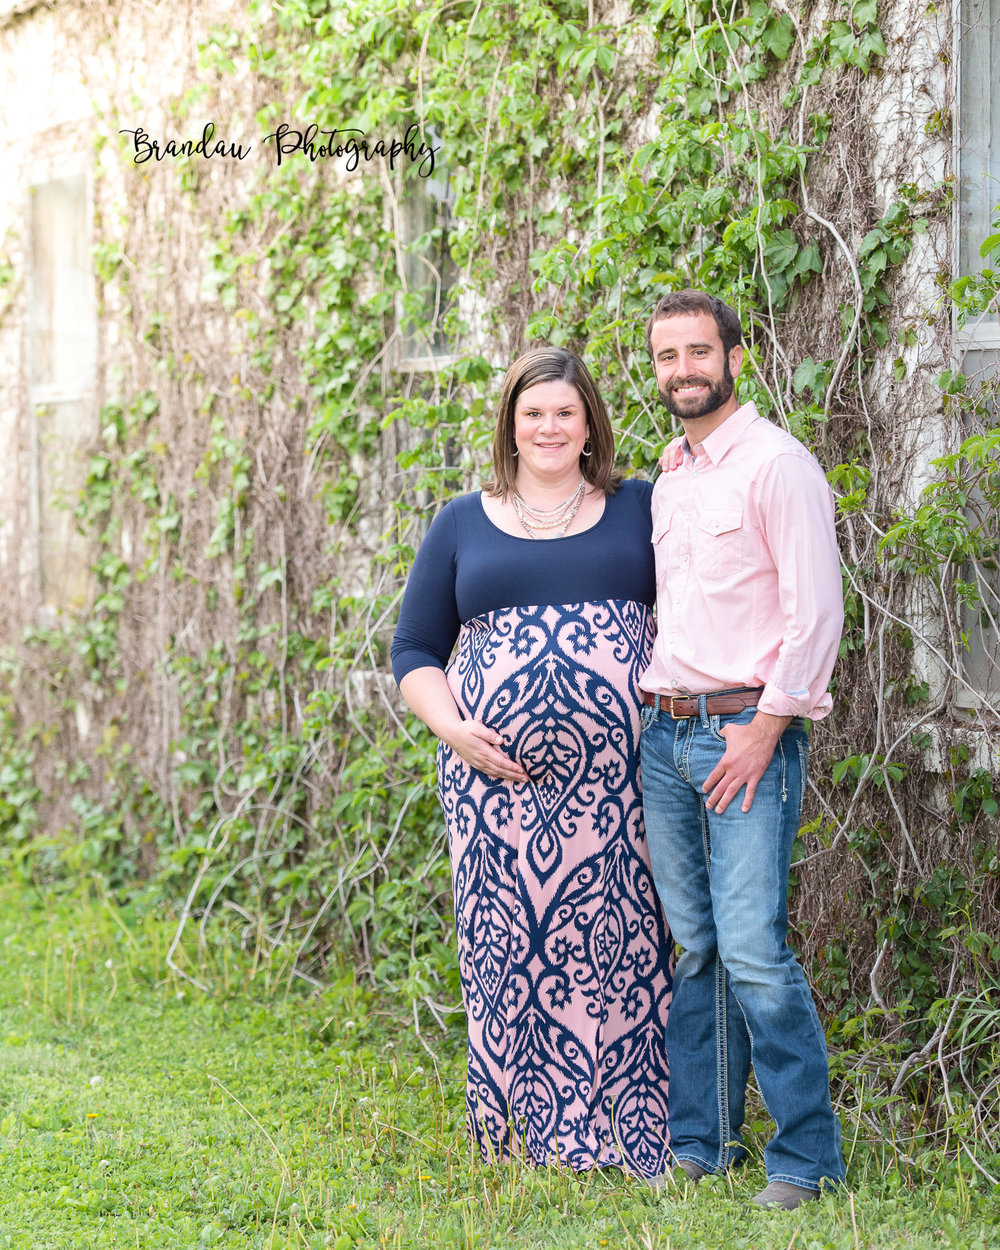 Engagement Rural Iowa_Brandau Photography-29.jpg